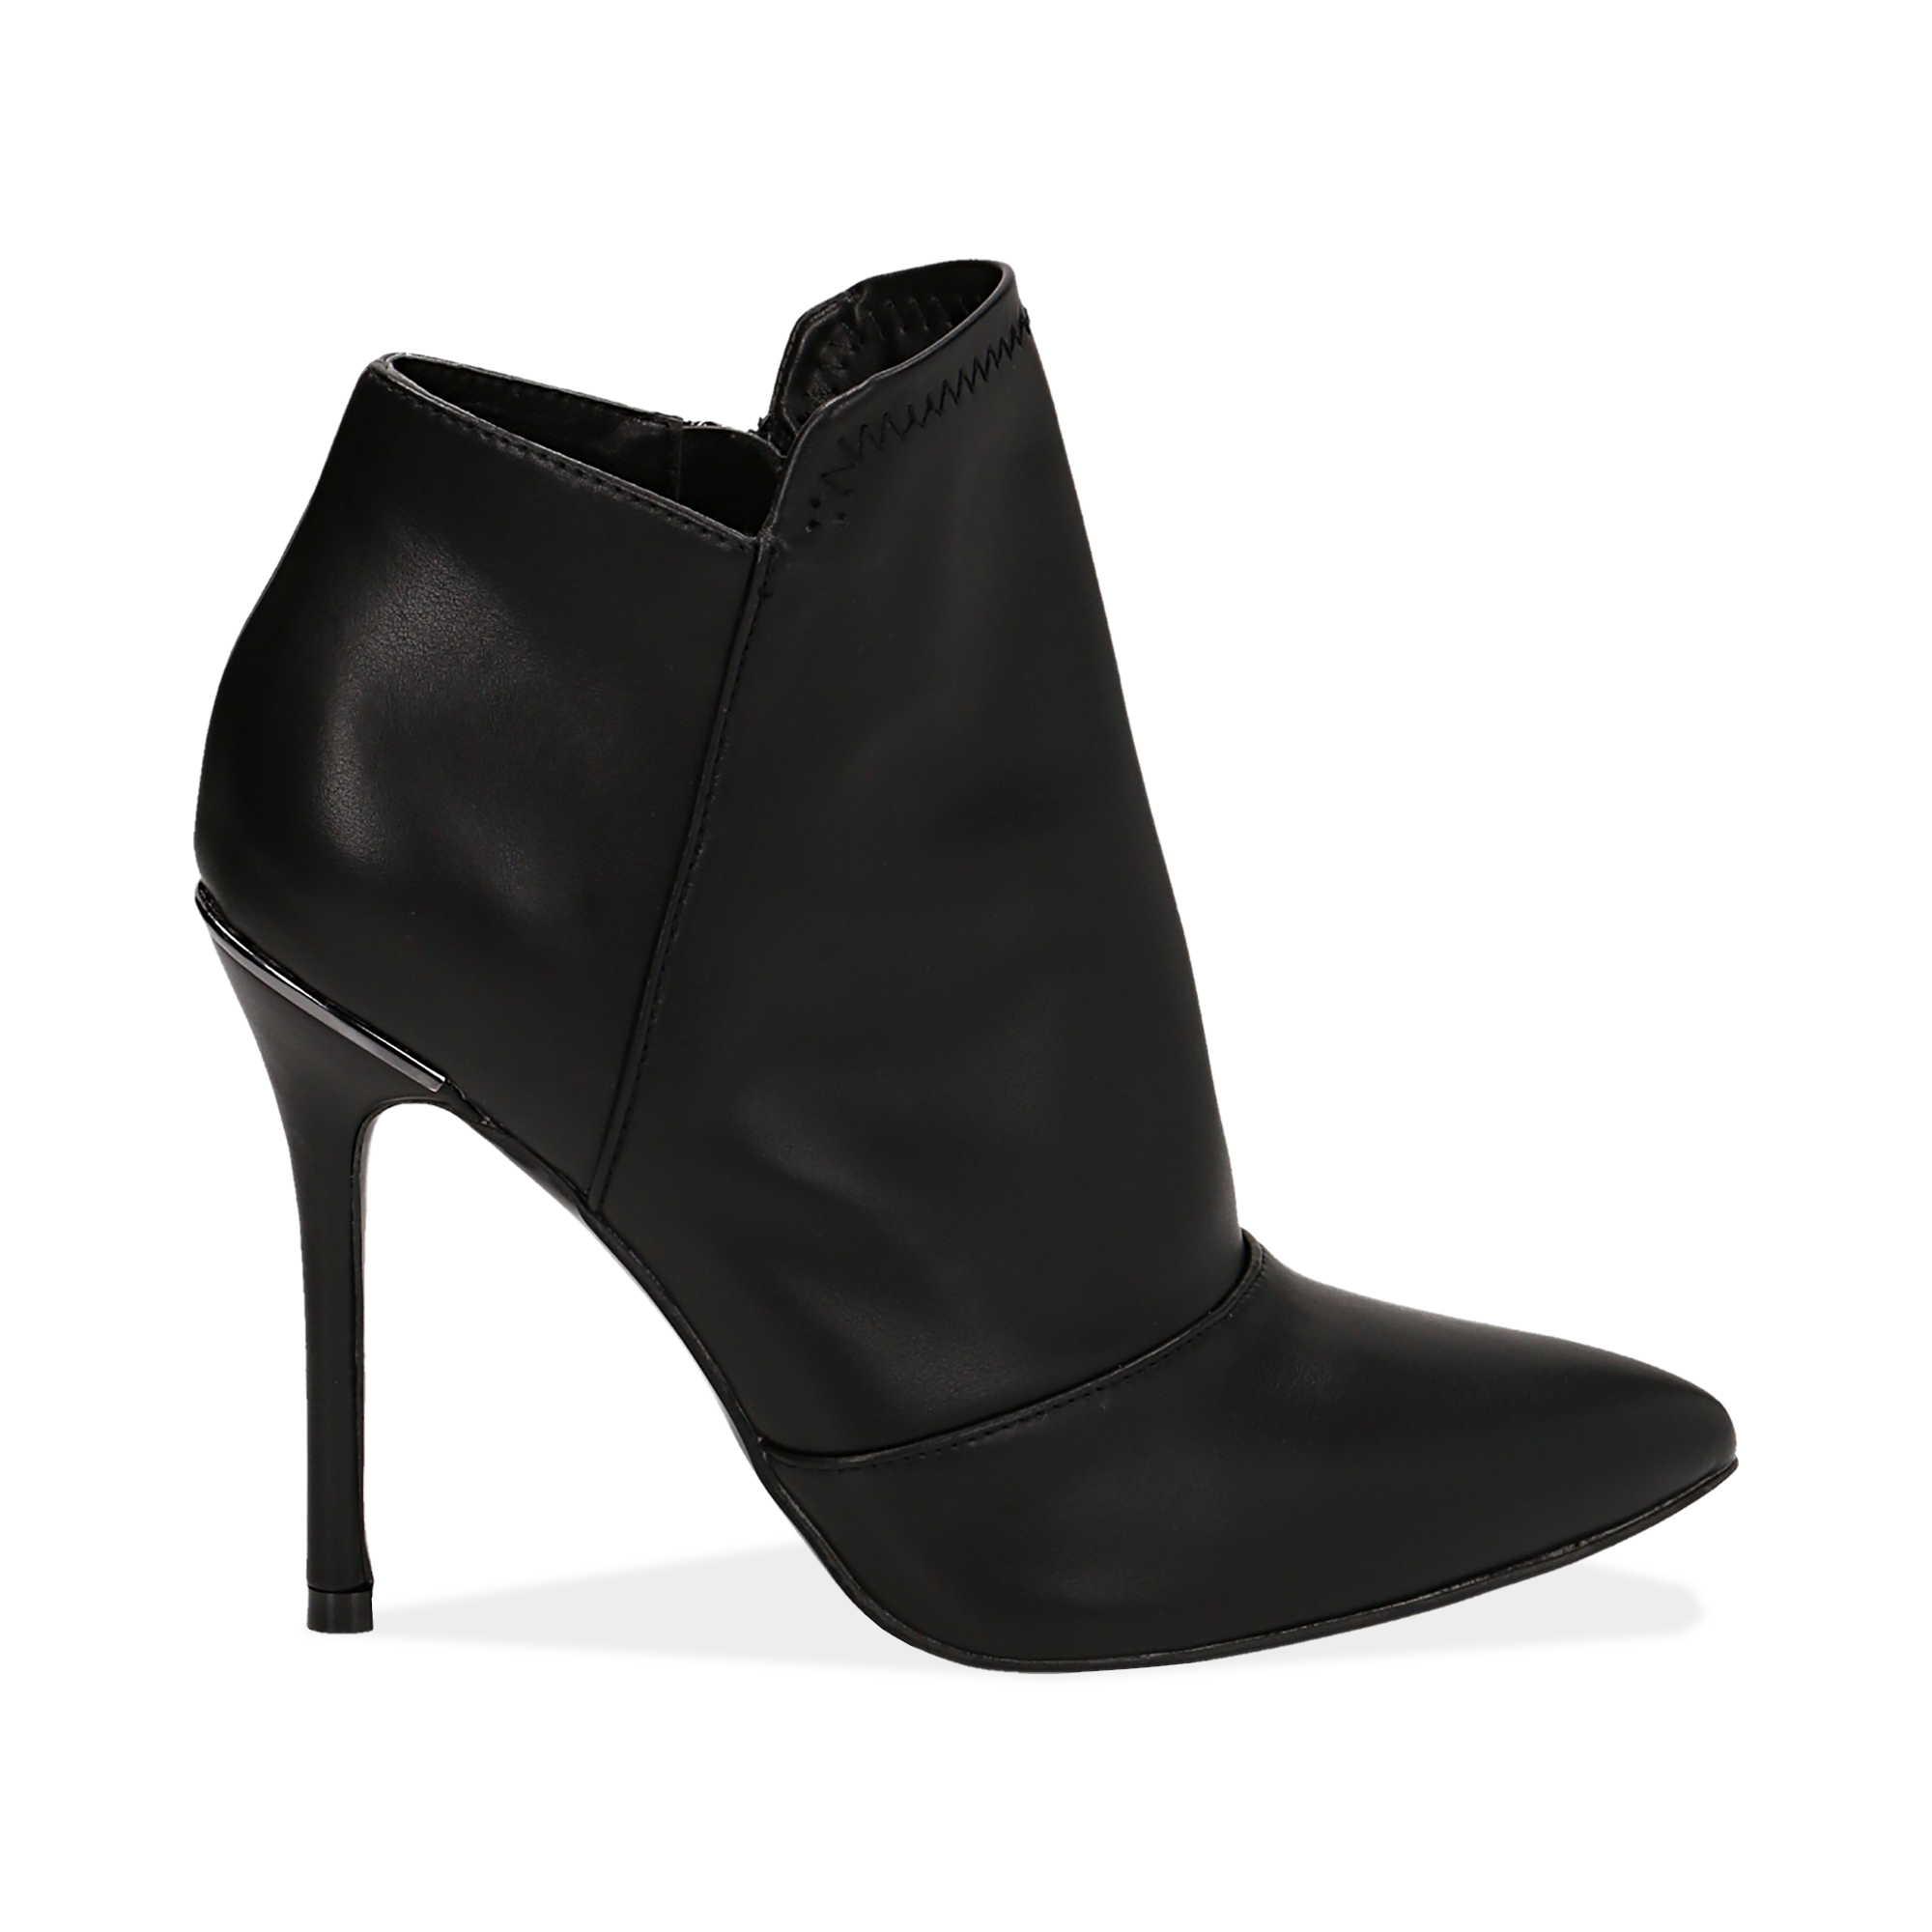 Ankle boots neri in eco-pelle, tacco 10, 50 cm